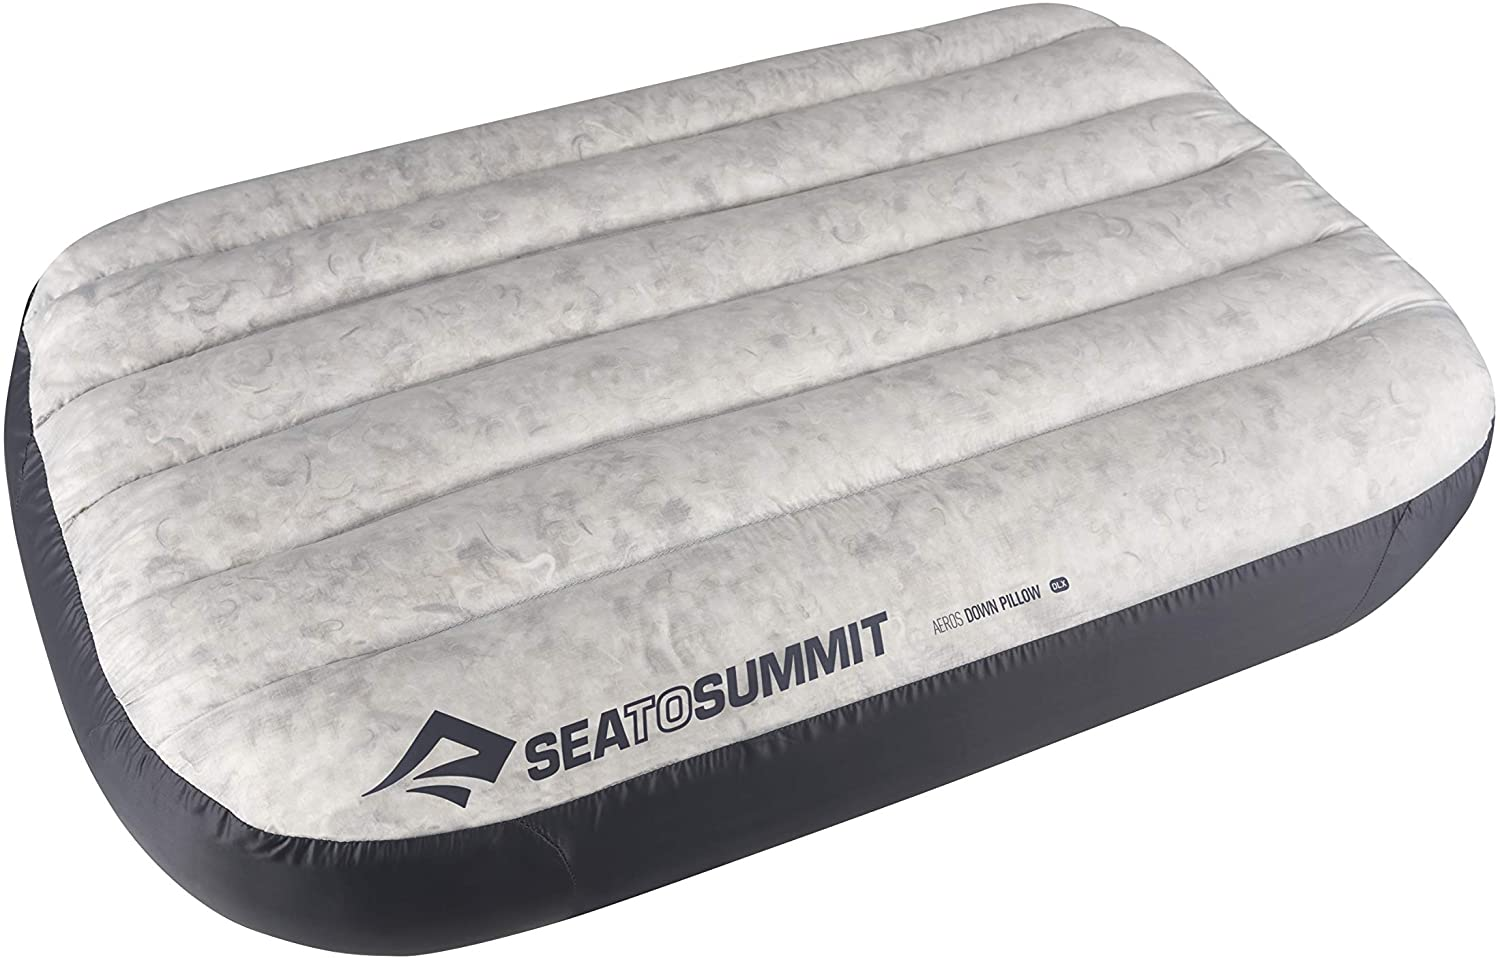 sea to summit camping pillow for cold weather